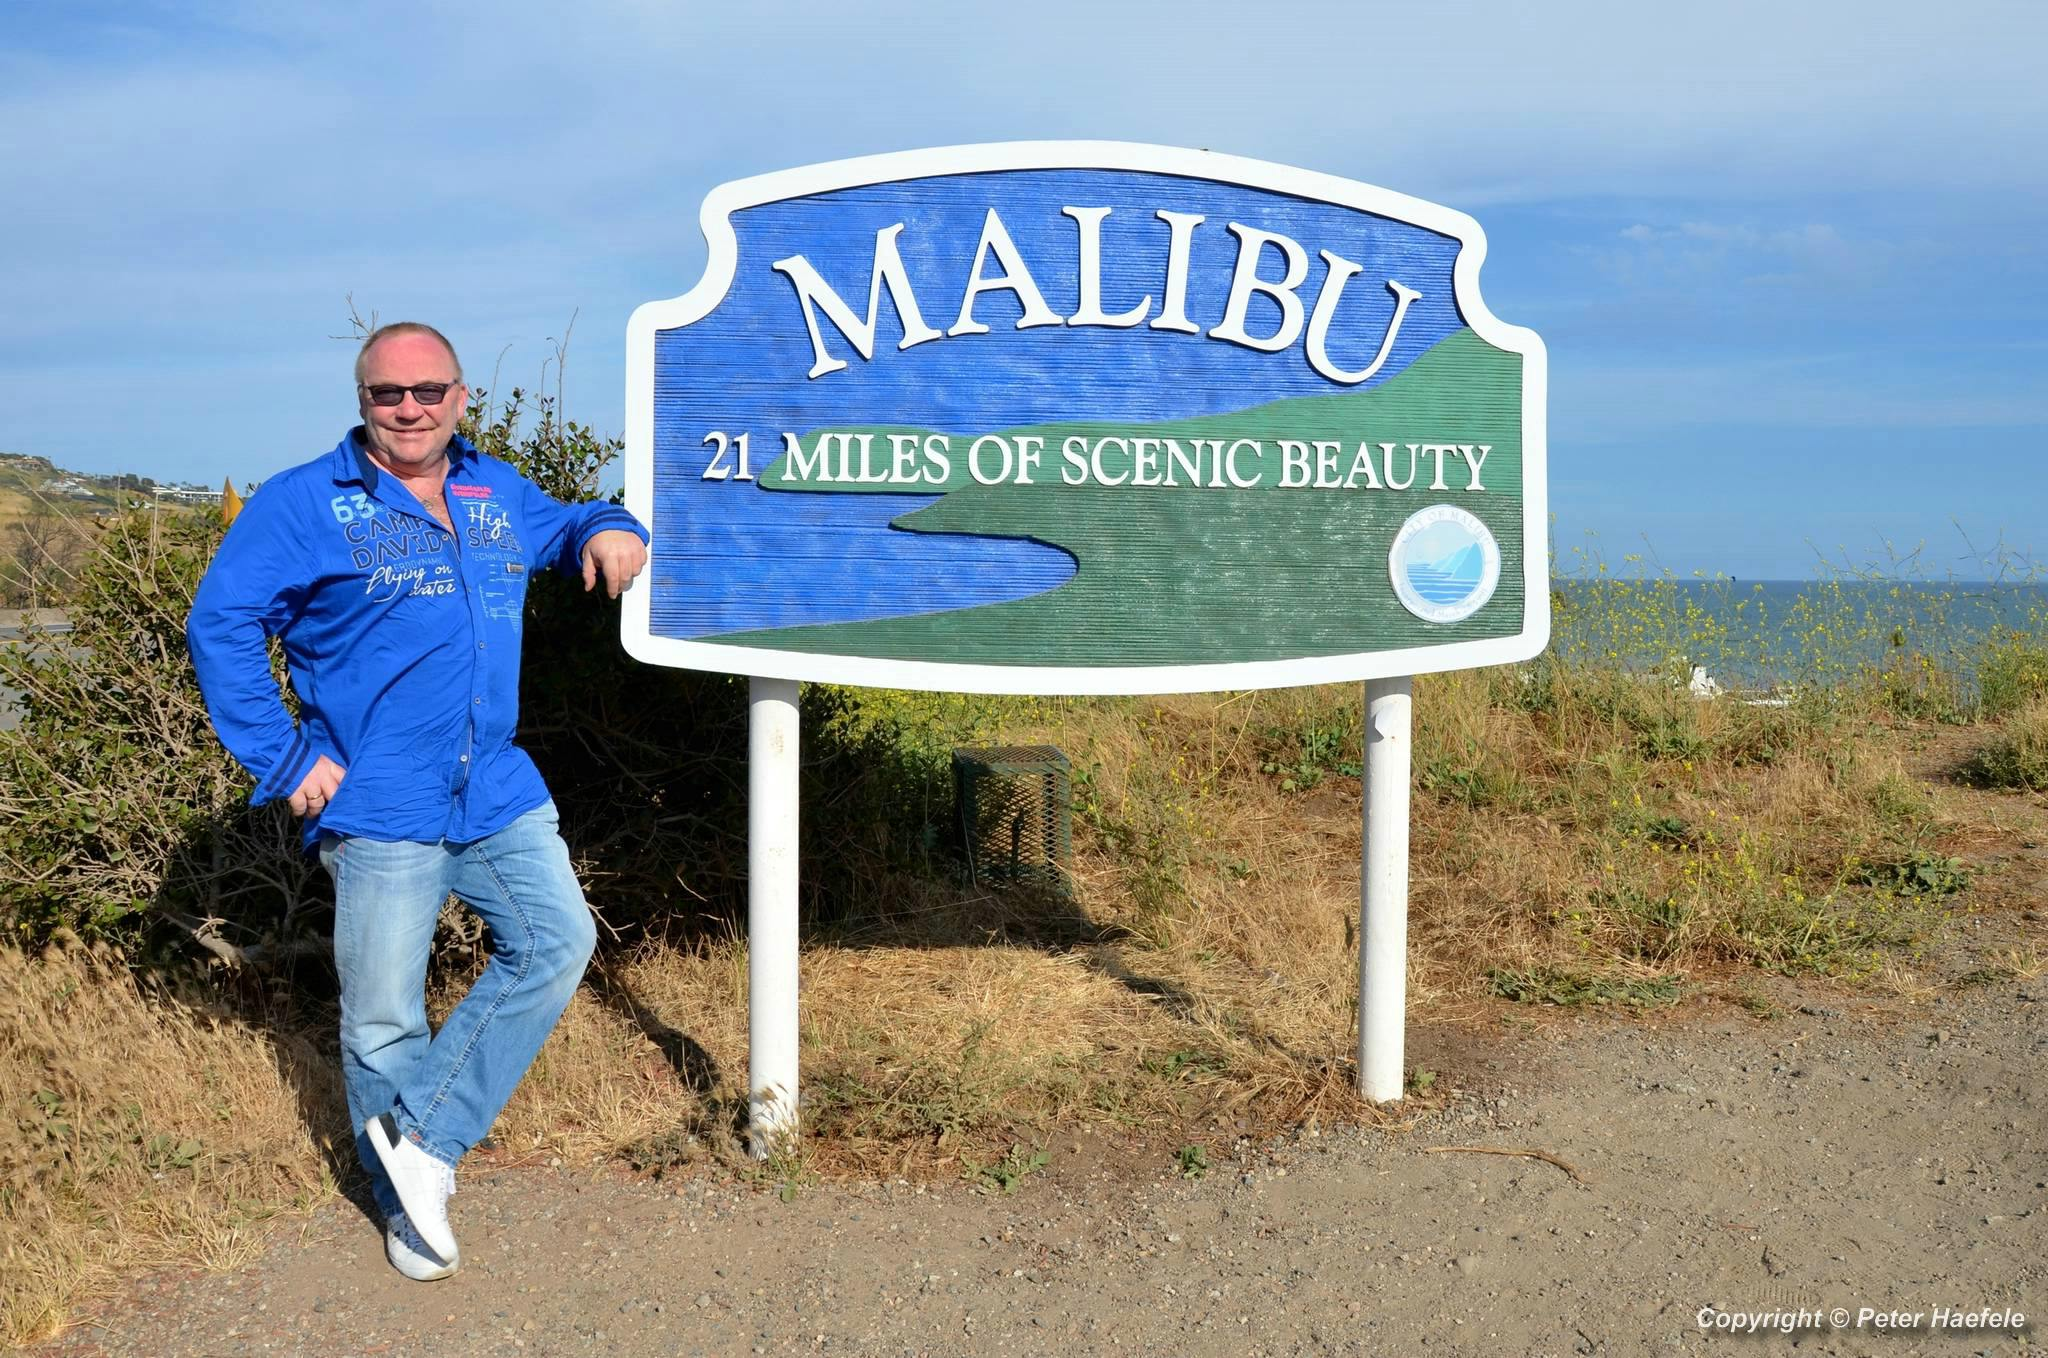 Roadtrip USA - Malibu - 21 Miles of Scenic Beauty